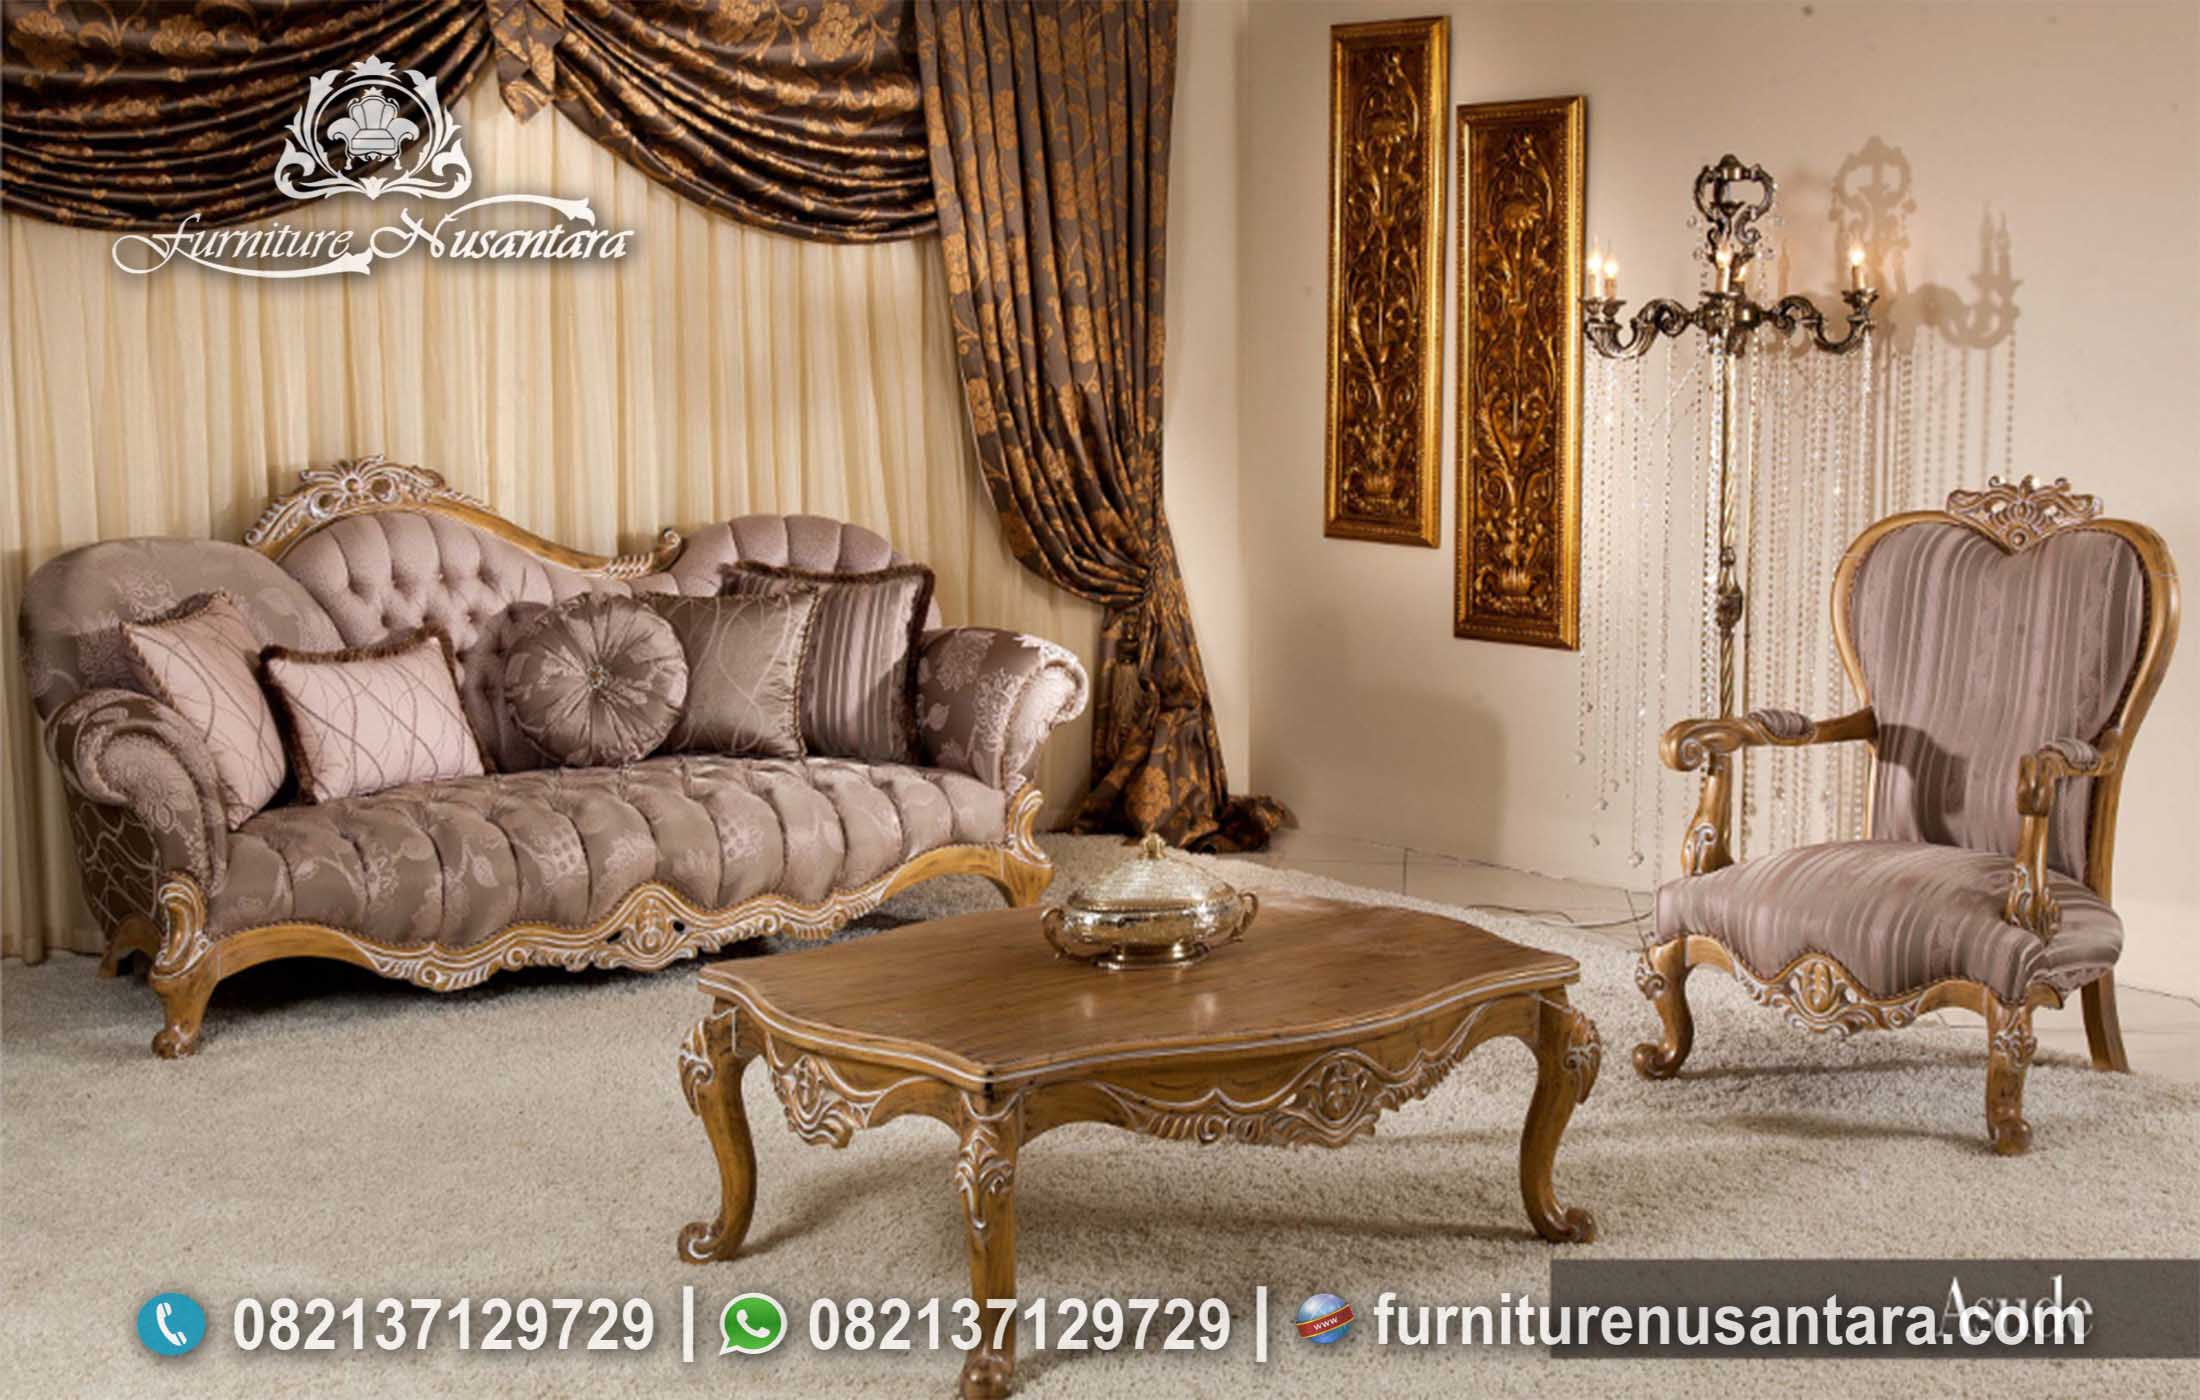 Sofa Ukir Jati Natural Modern ST-42, Furniture Nusantara